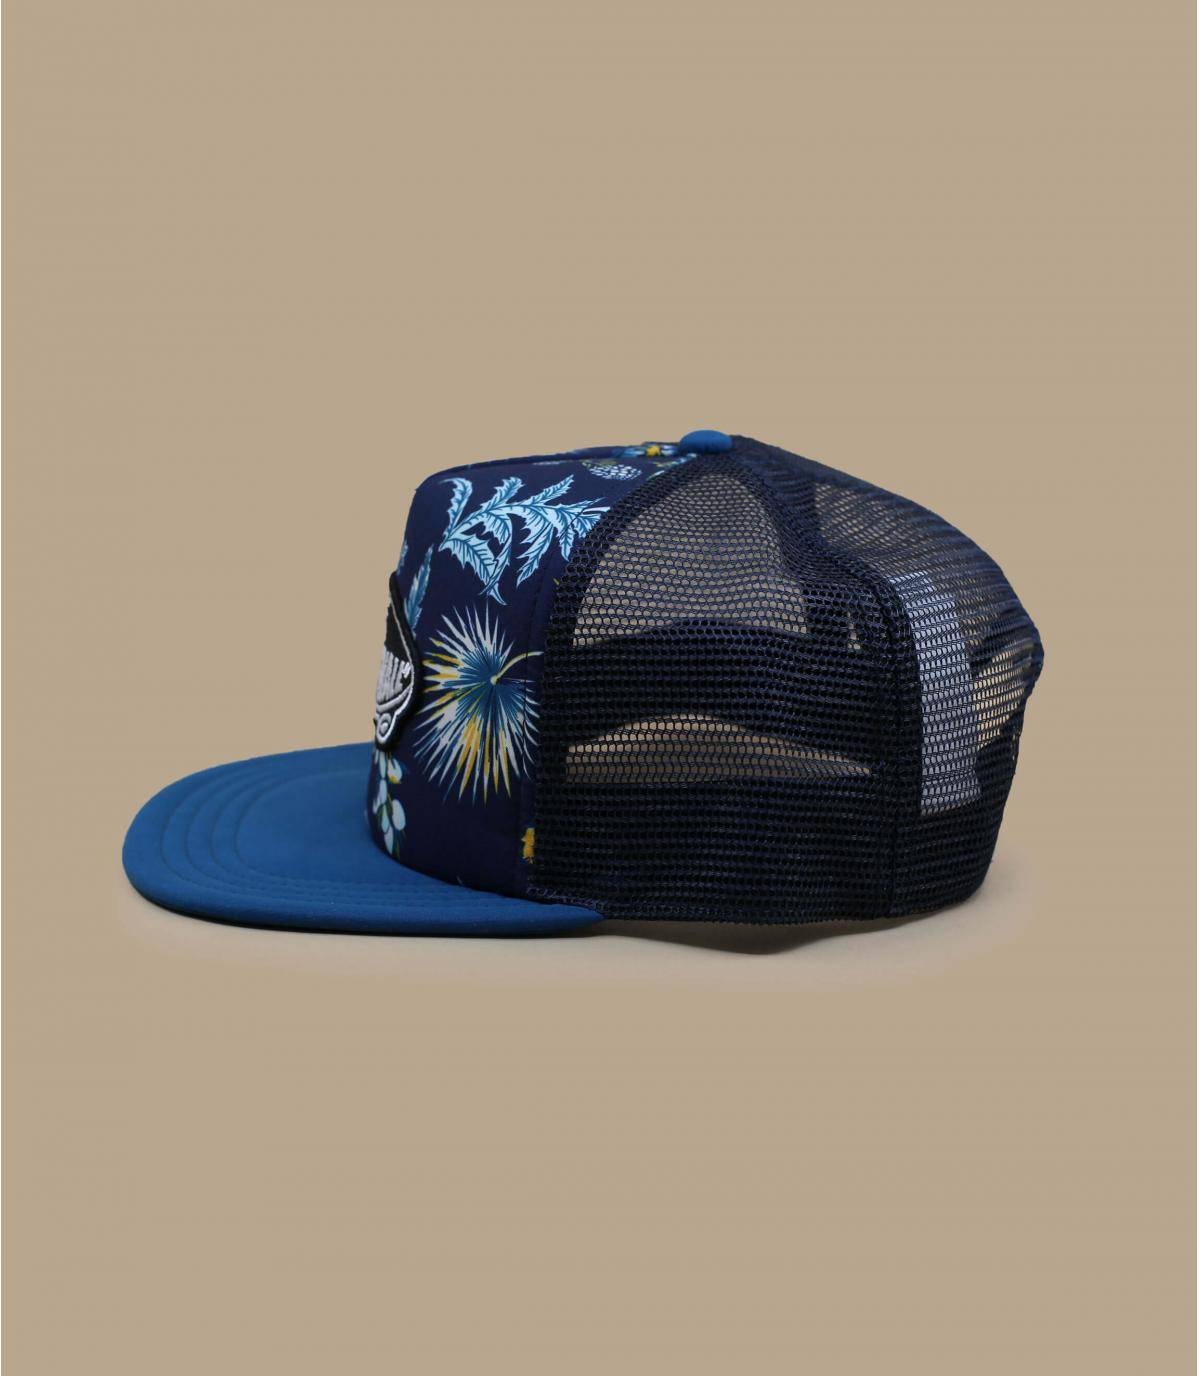 Details Snapback Full Patch Trucker califas - afbeeling 3